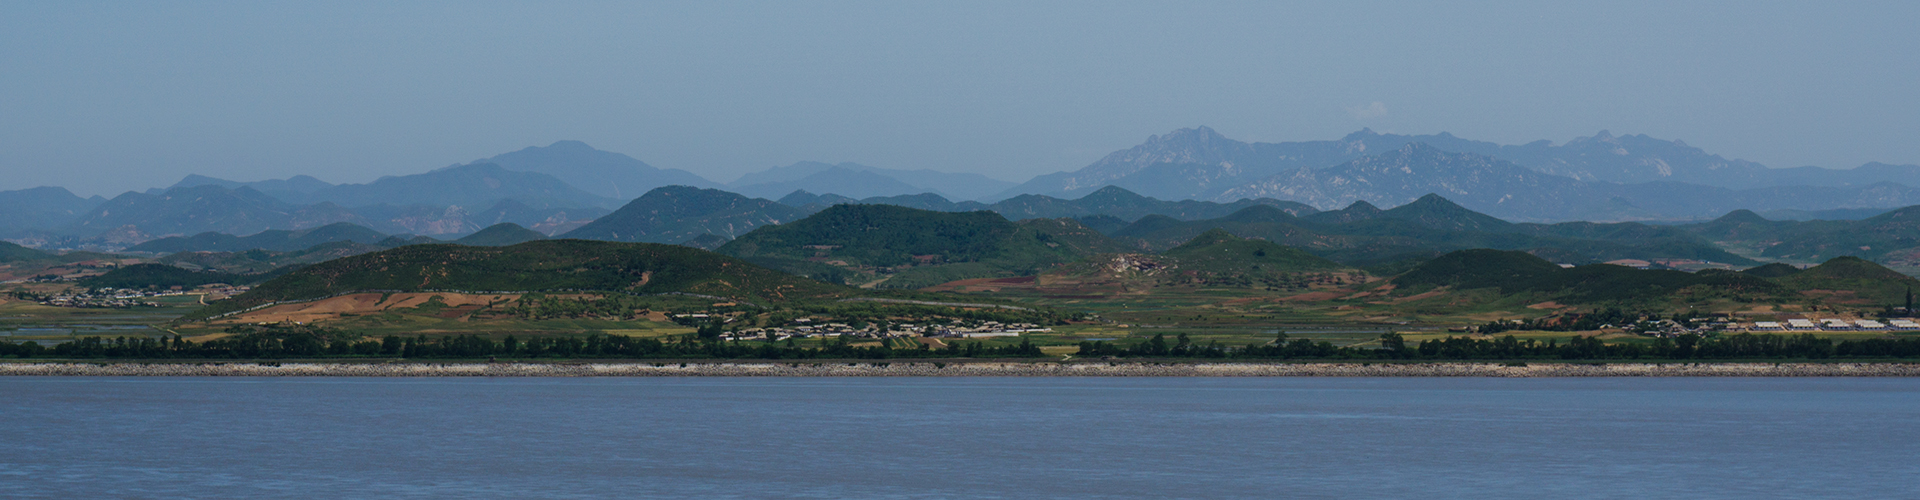 Landmark photograph of North Korea